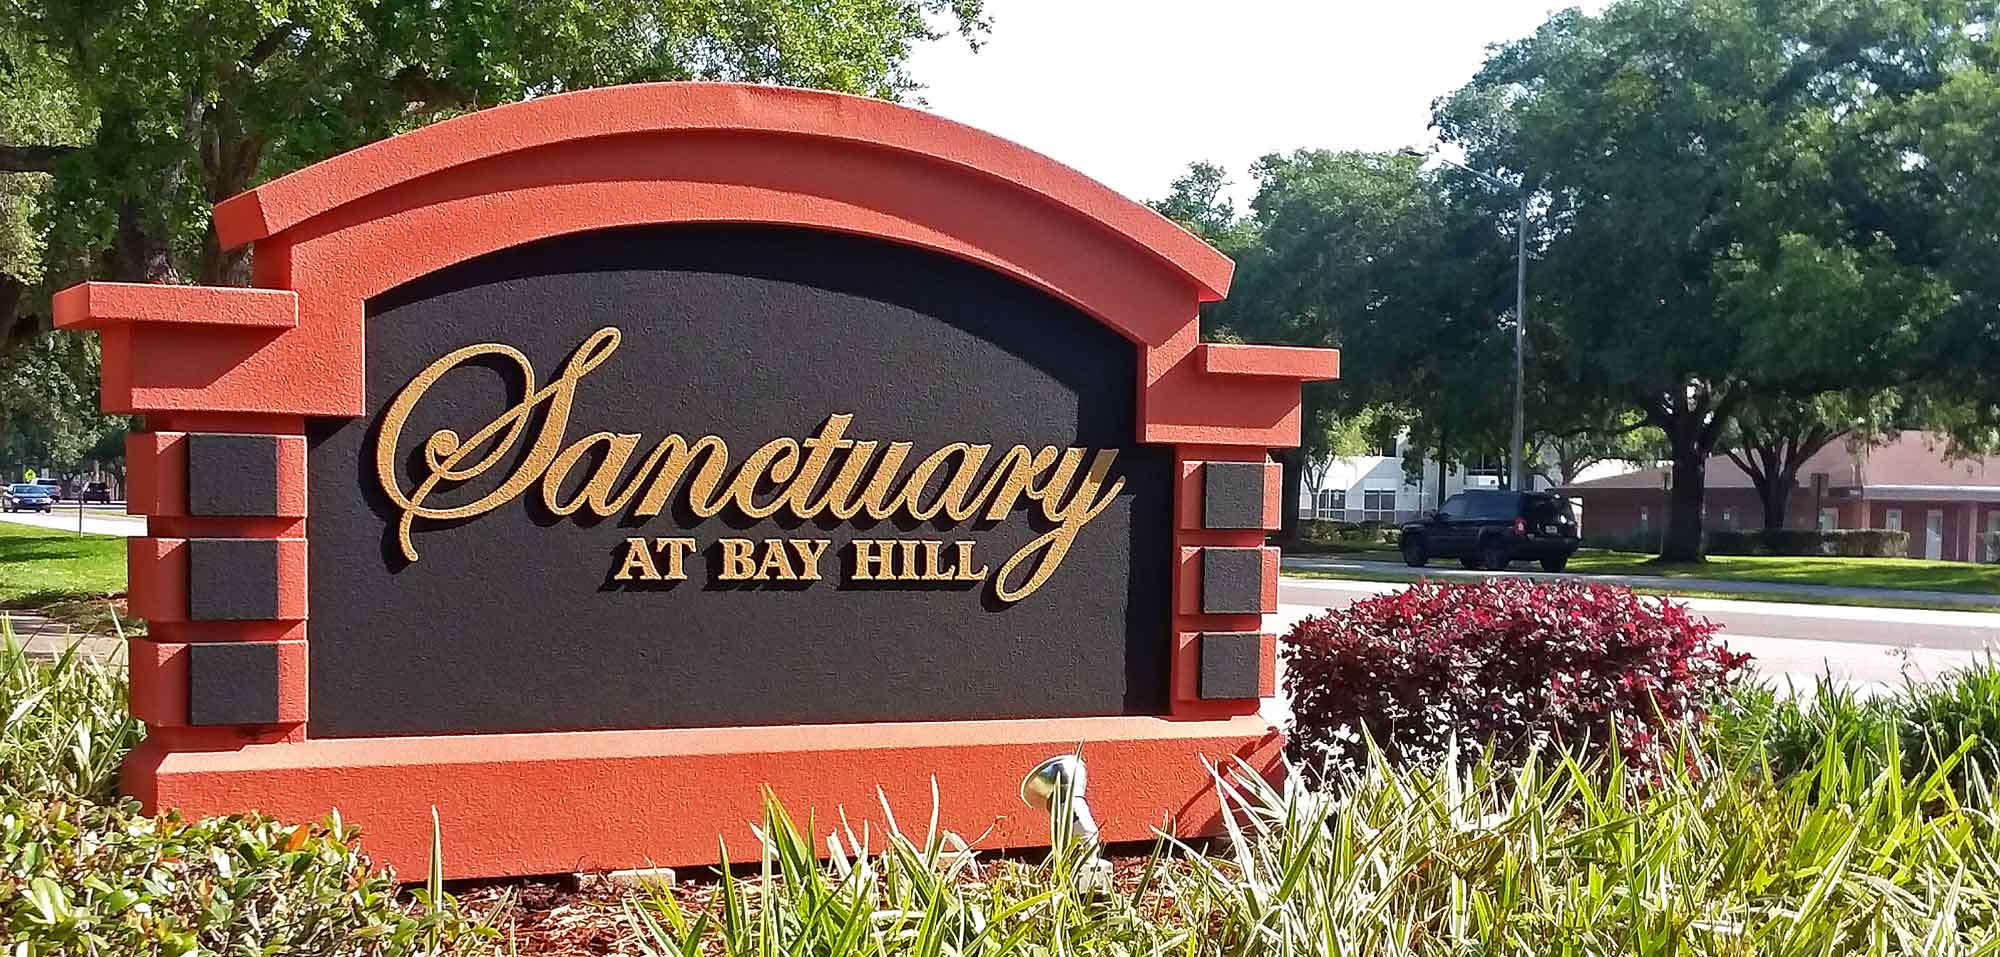 Sanctuary at Bay Hill sign